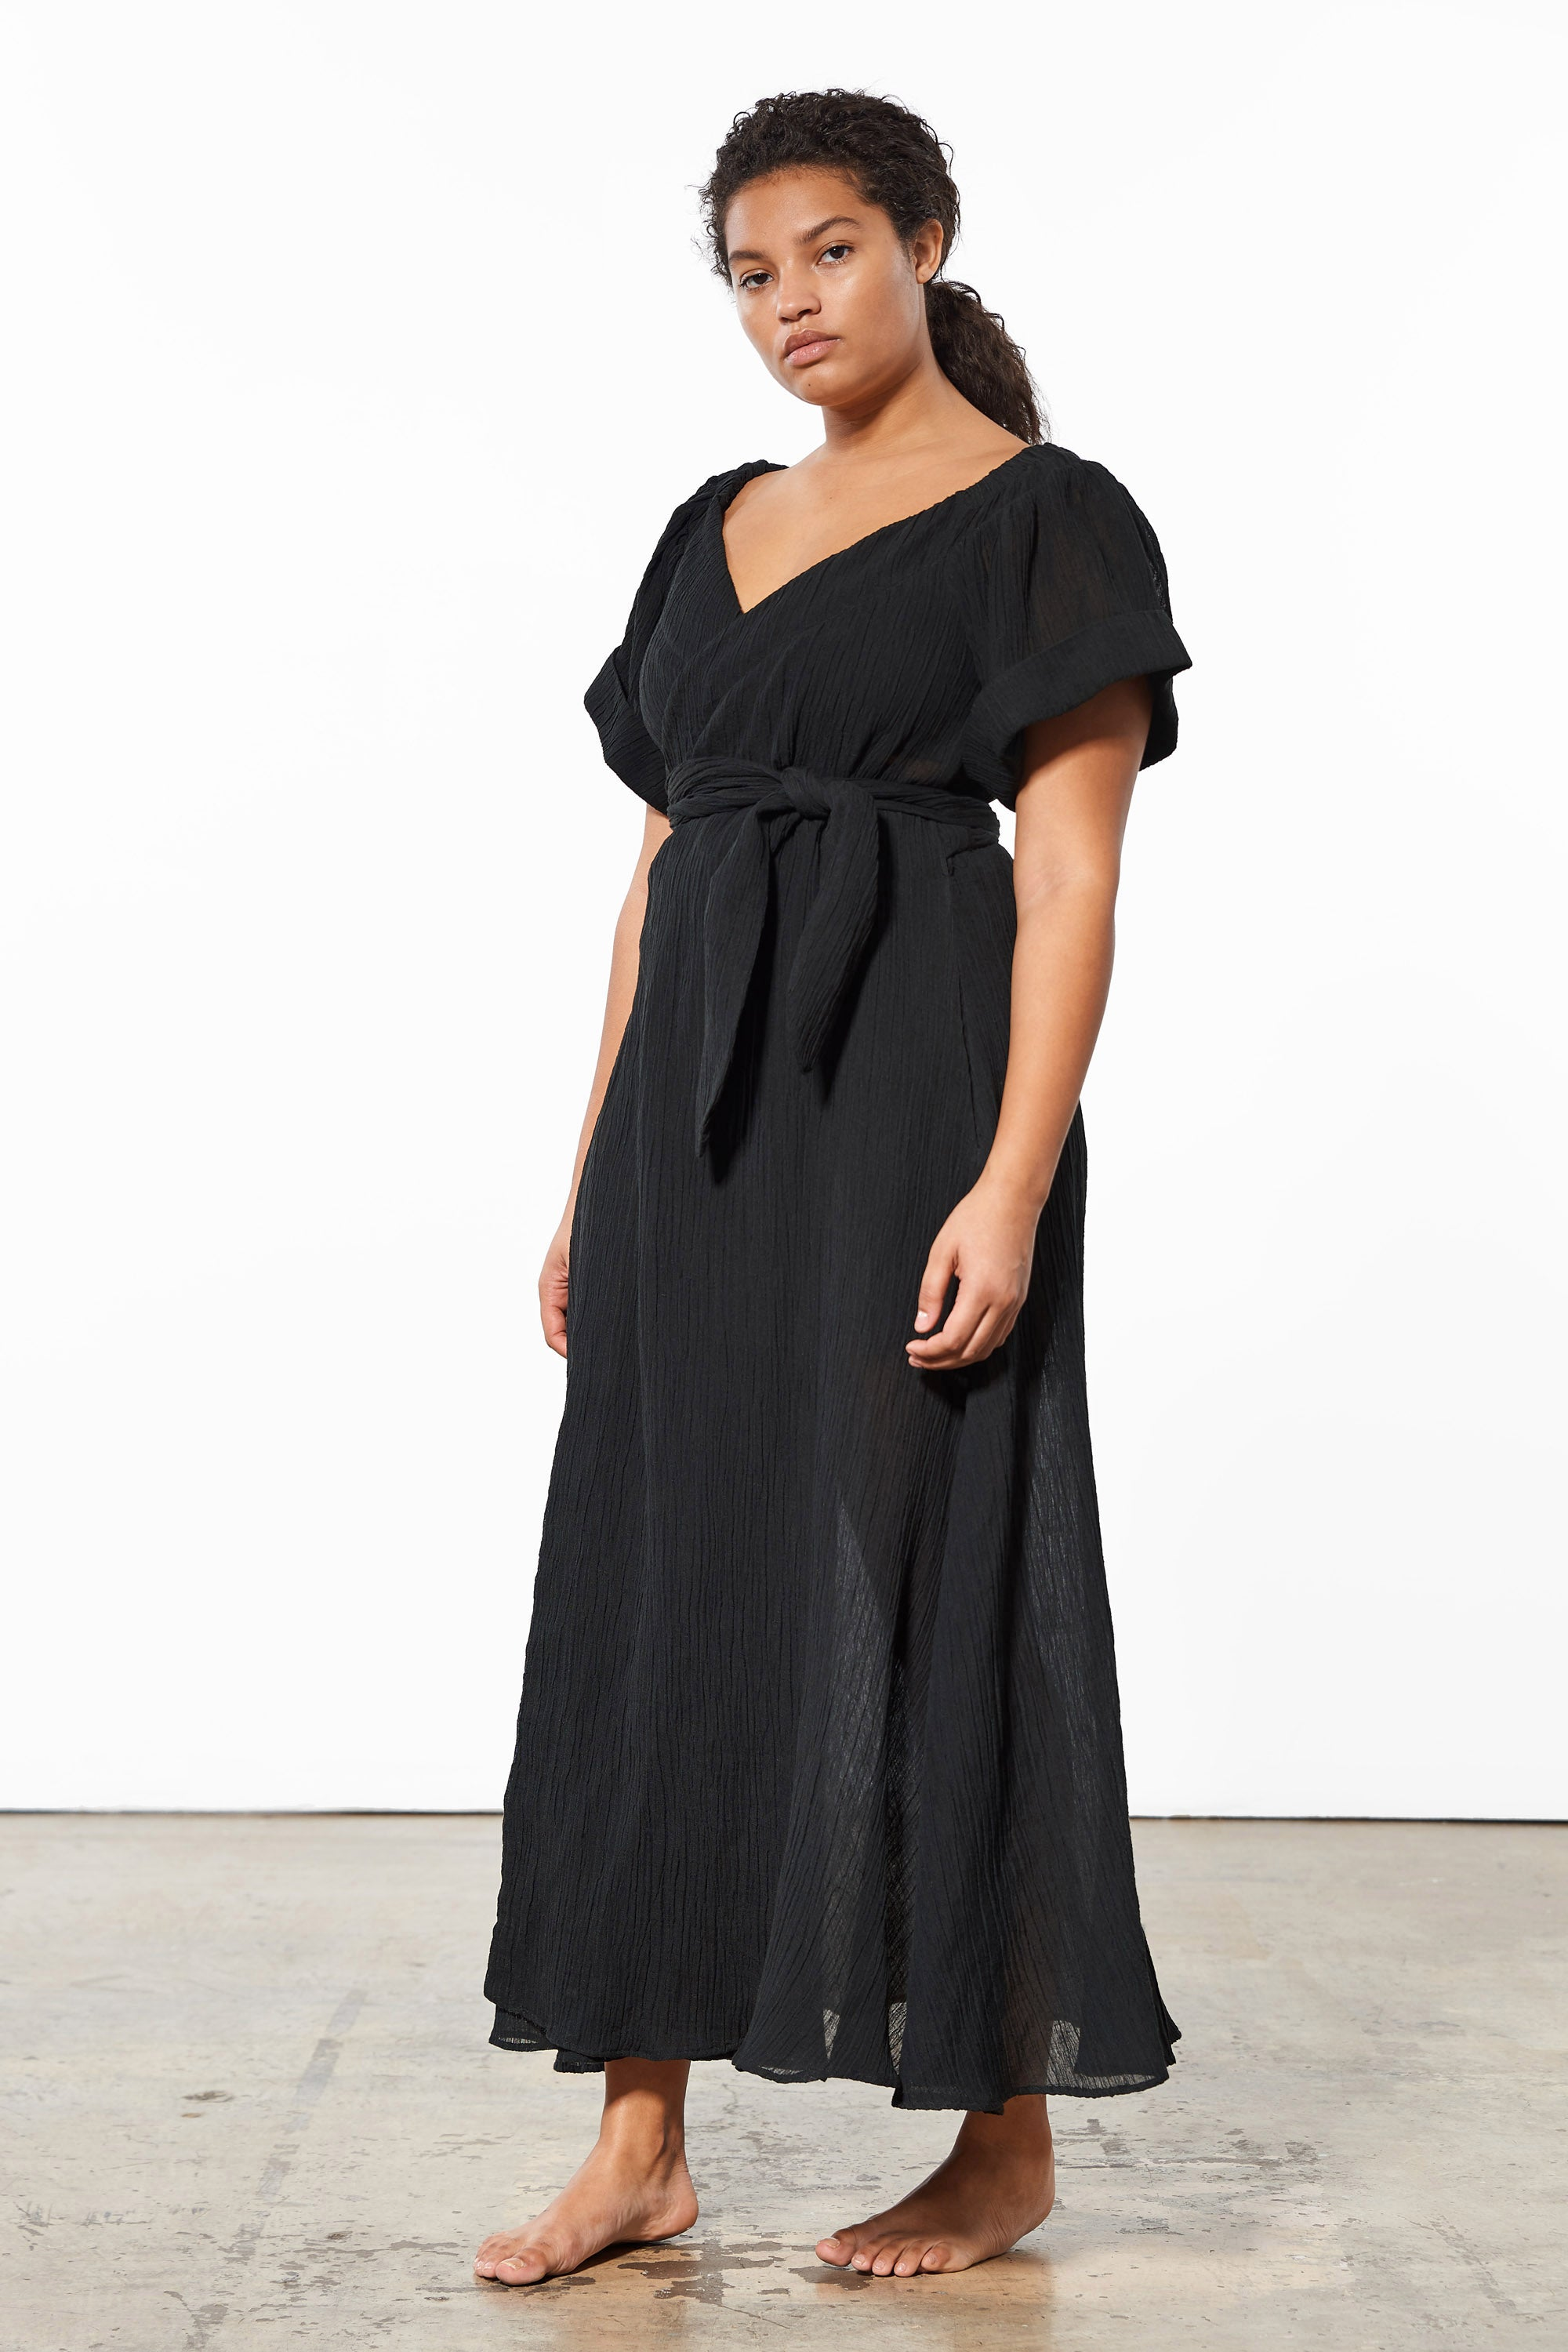 Mara Hoffman Extended Black Adelina Cover Up Dress in organic cotton and linen (side)